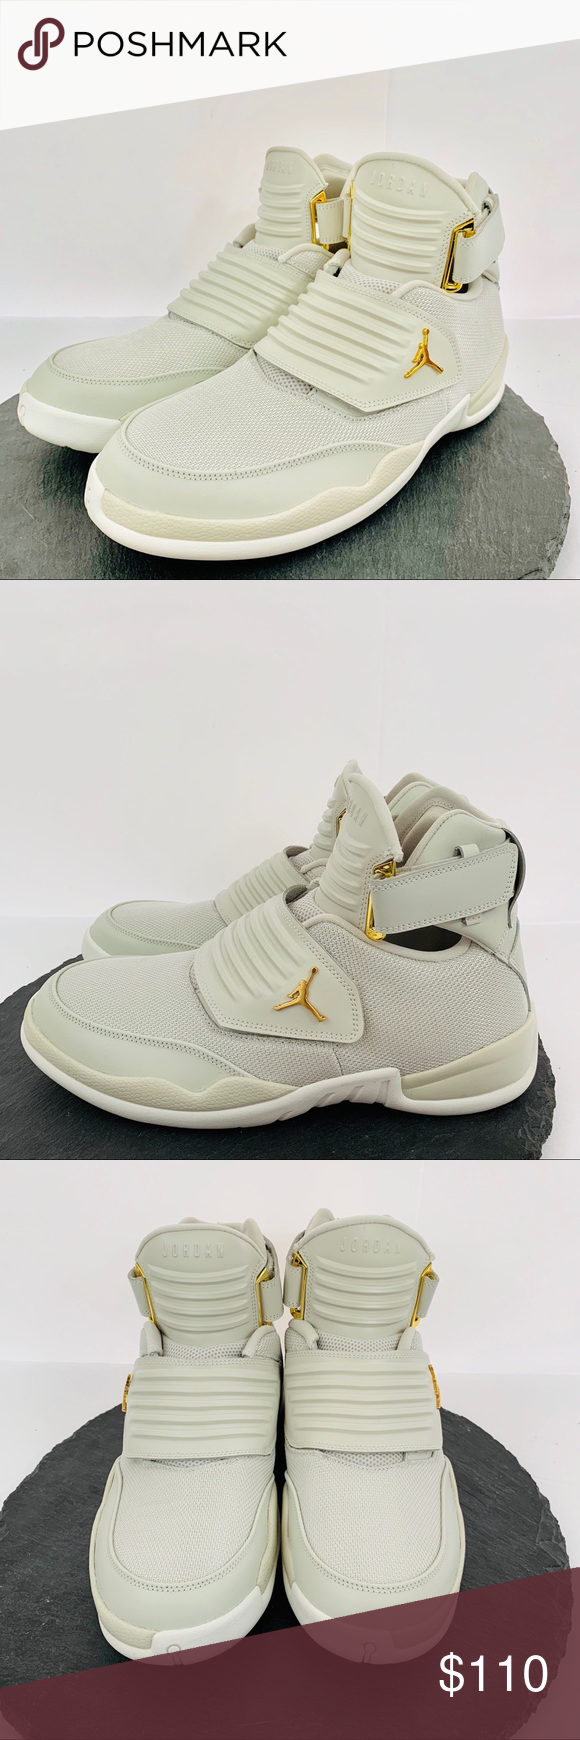 Air Jordan Generation 23 men s basketball shoes Directly purchased from Nike  Inc. with 100% authentic brand new. Very comfortable and very stylish. f434c4848